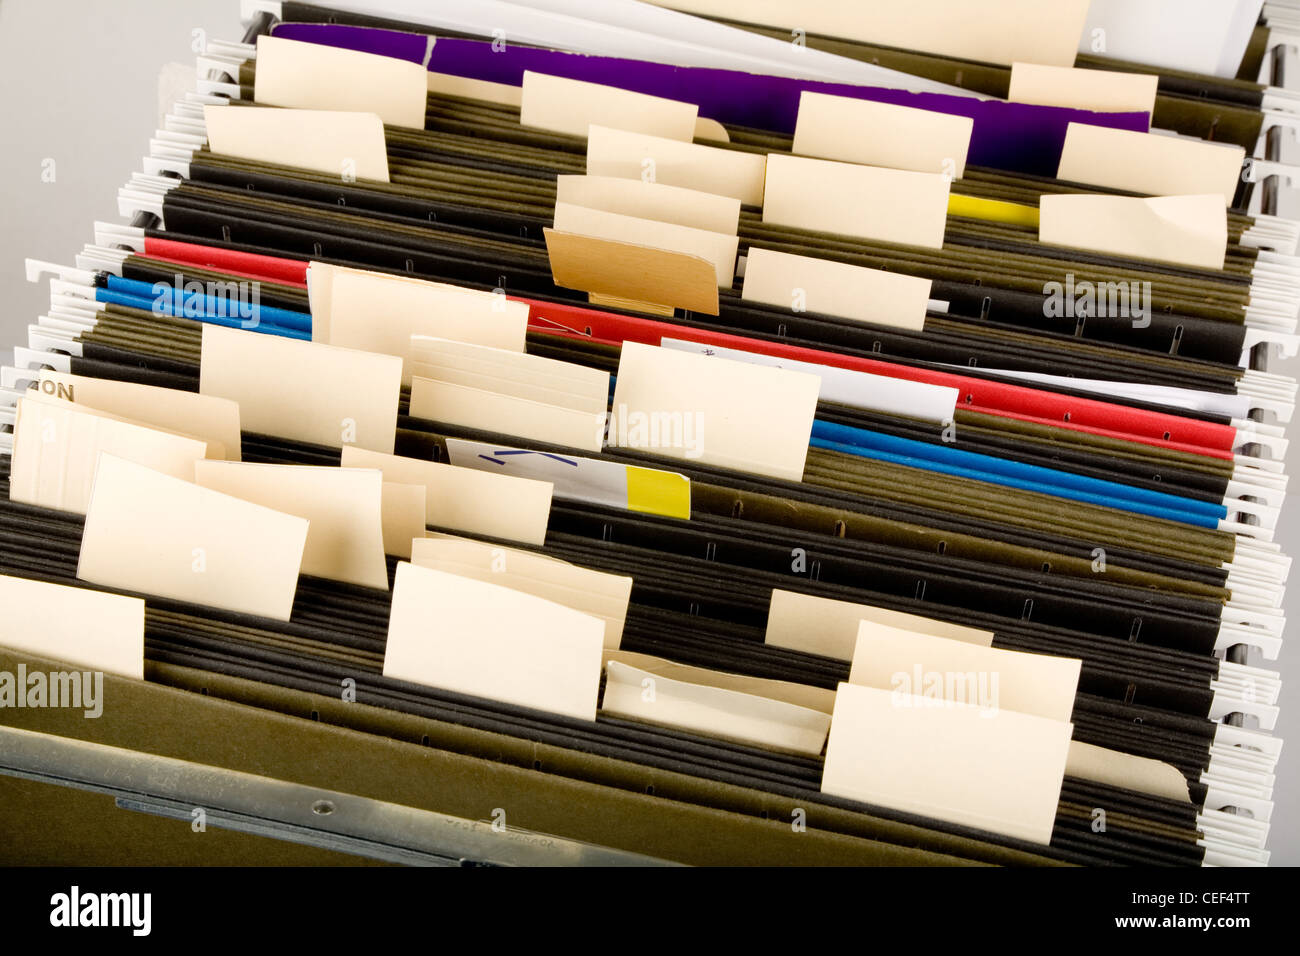 Hanging Folder and label, business concept - Stock Image